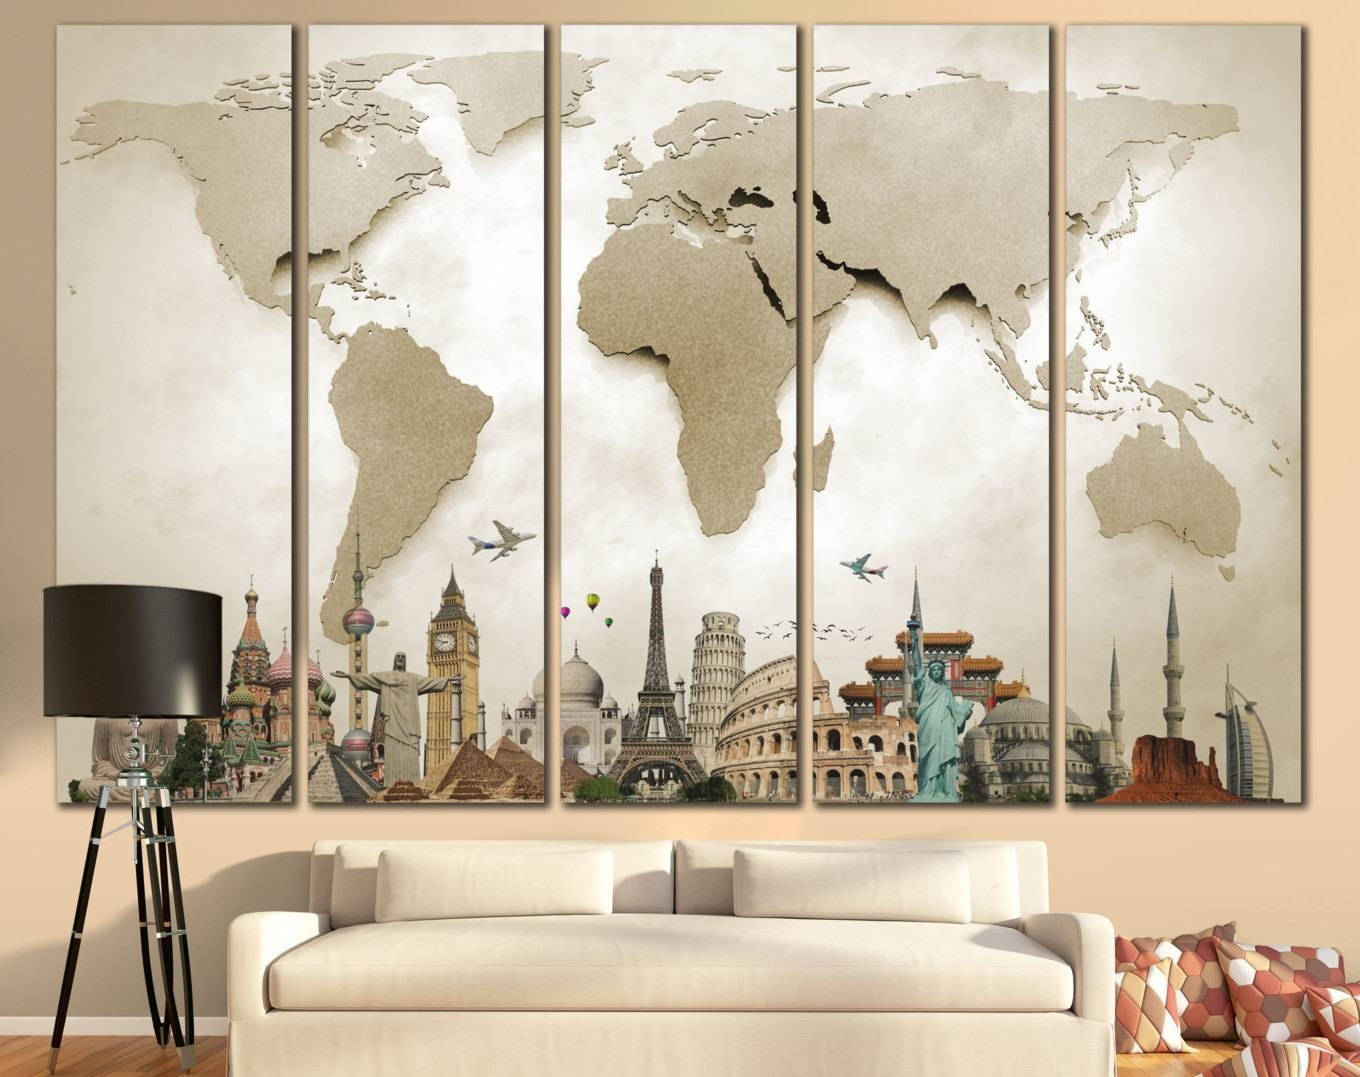 Fantastic Large Artwork For Wall Brilliant Ideas Large Art For Throughout 2017 World Map Wall Artwork (Gallery 4 of 20)